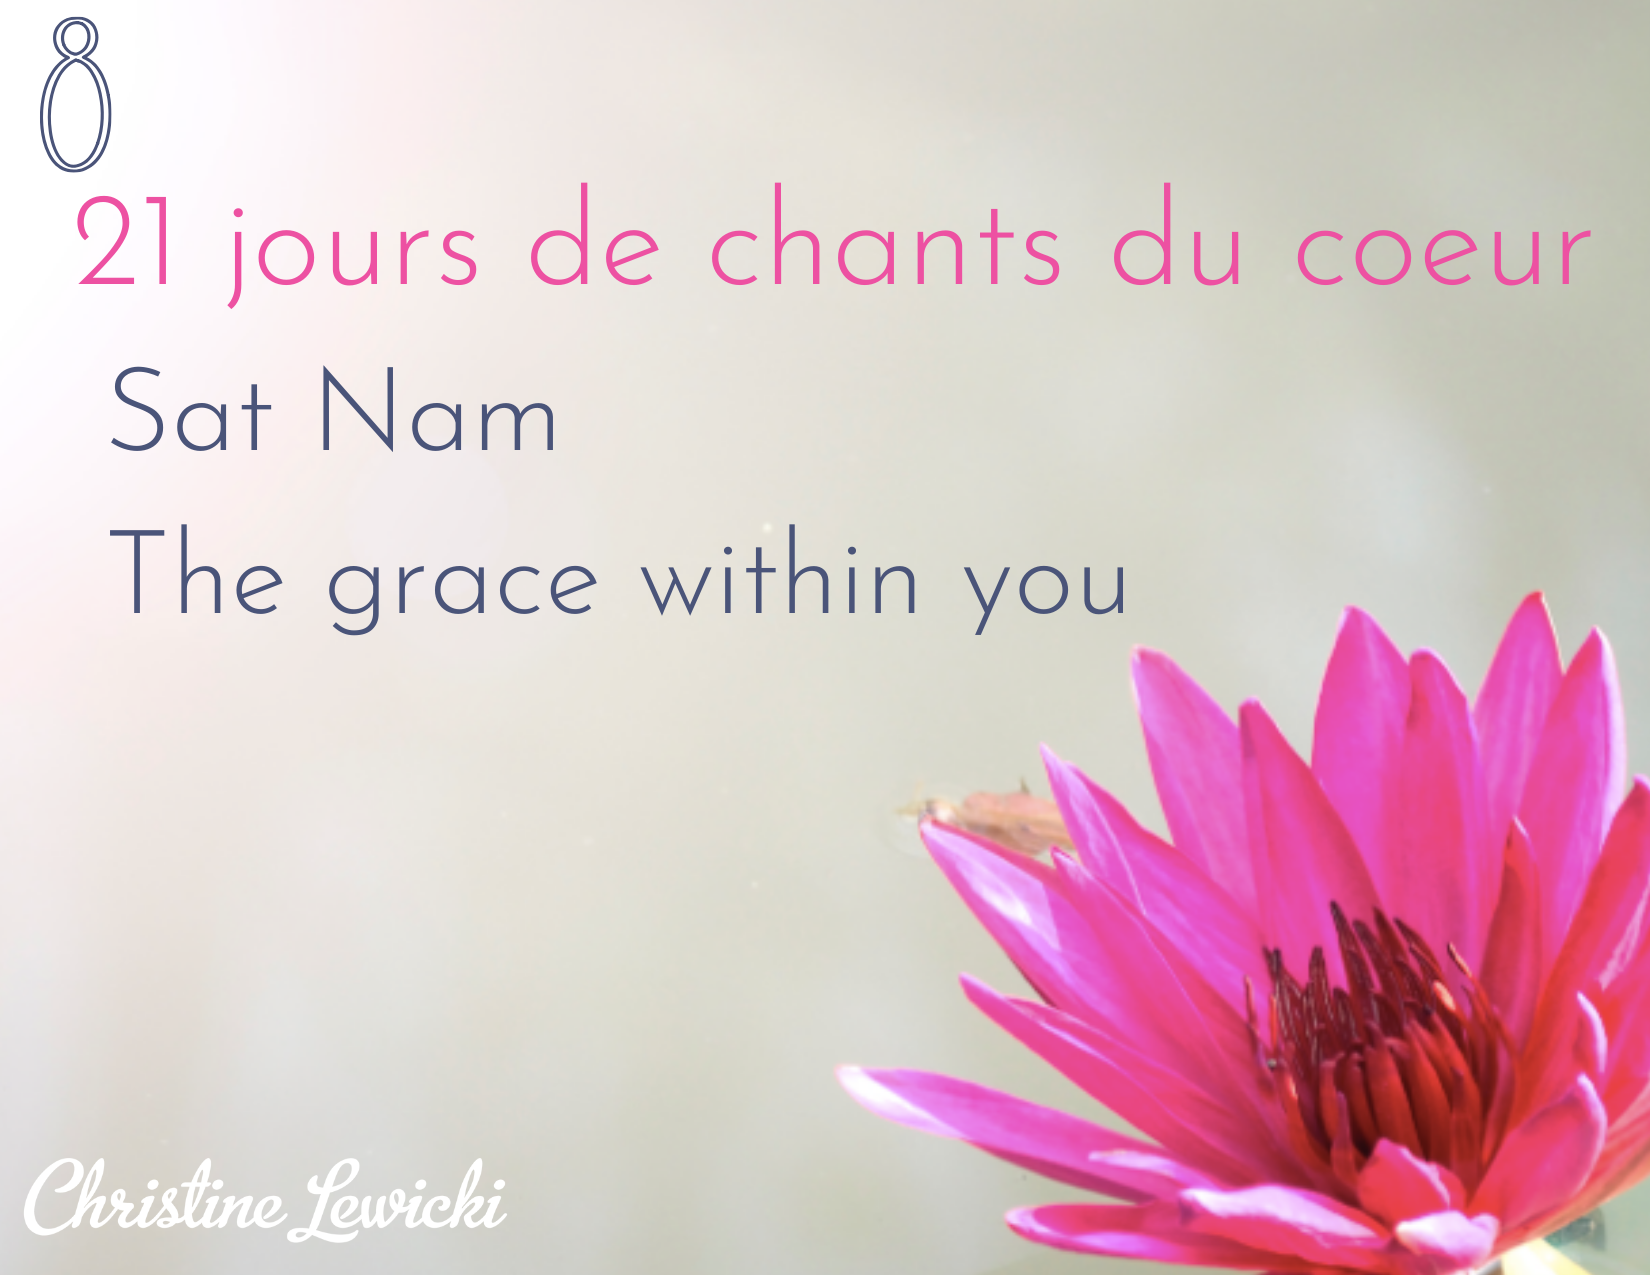 Sat Nam - the grace within you